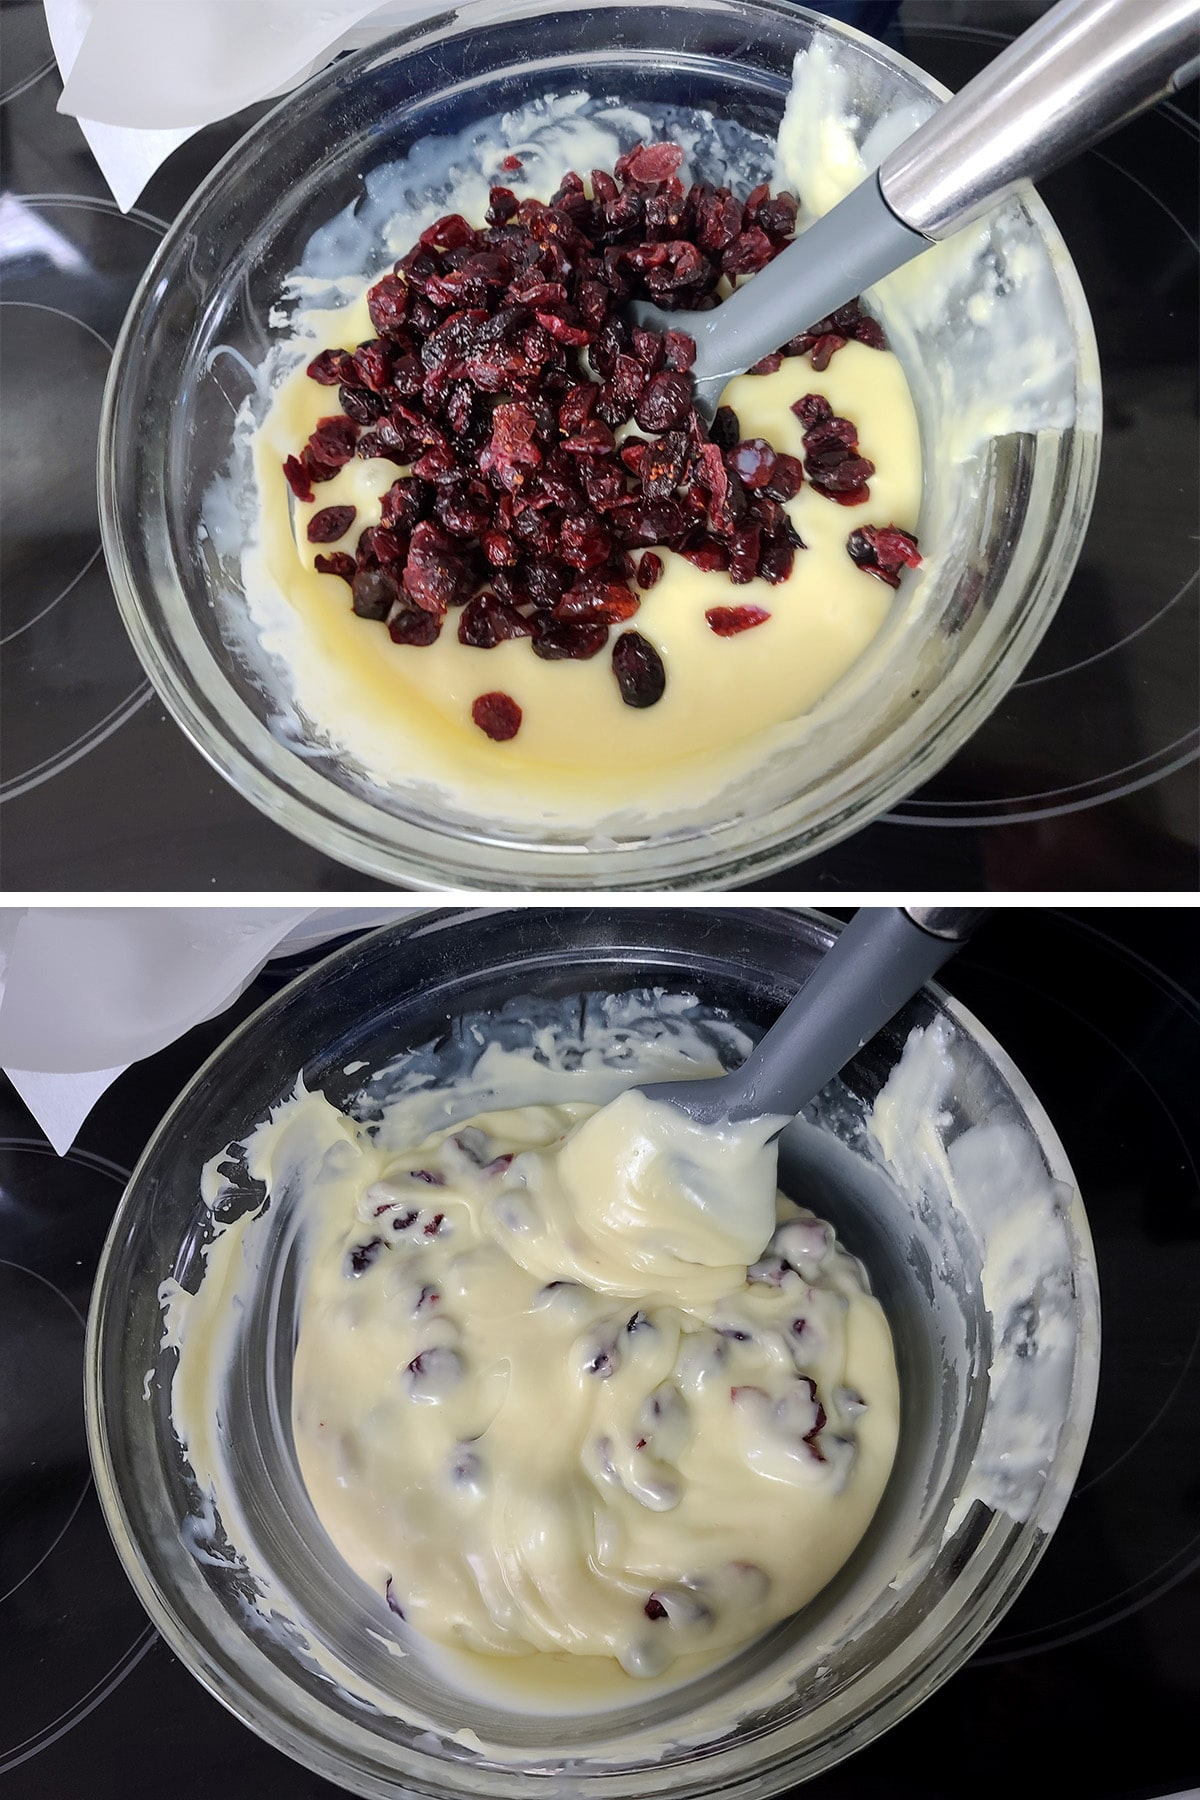 Dried cranberries being stirrred into the melted chocolate mixture.